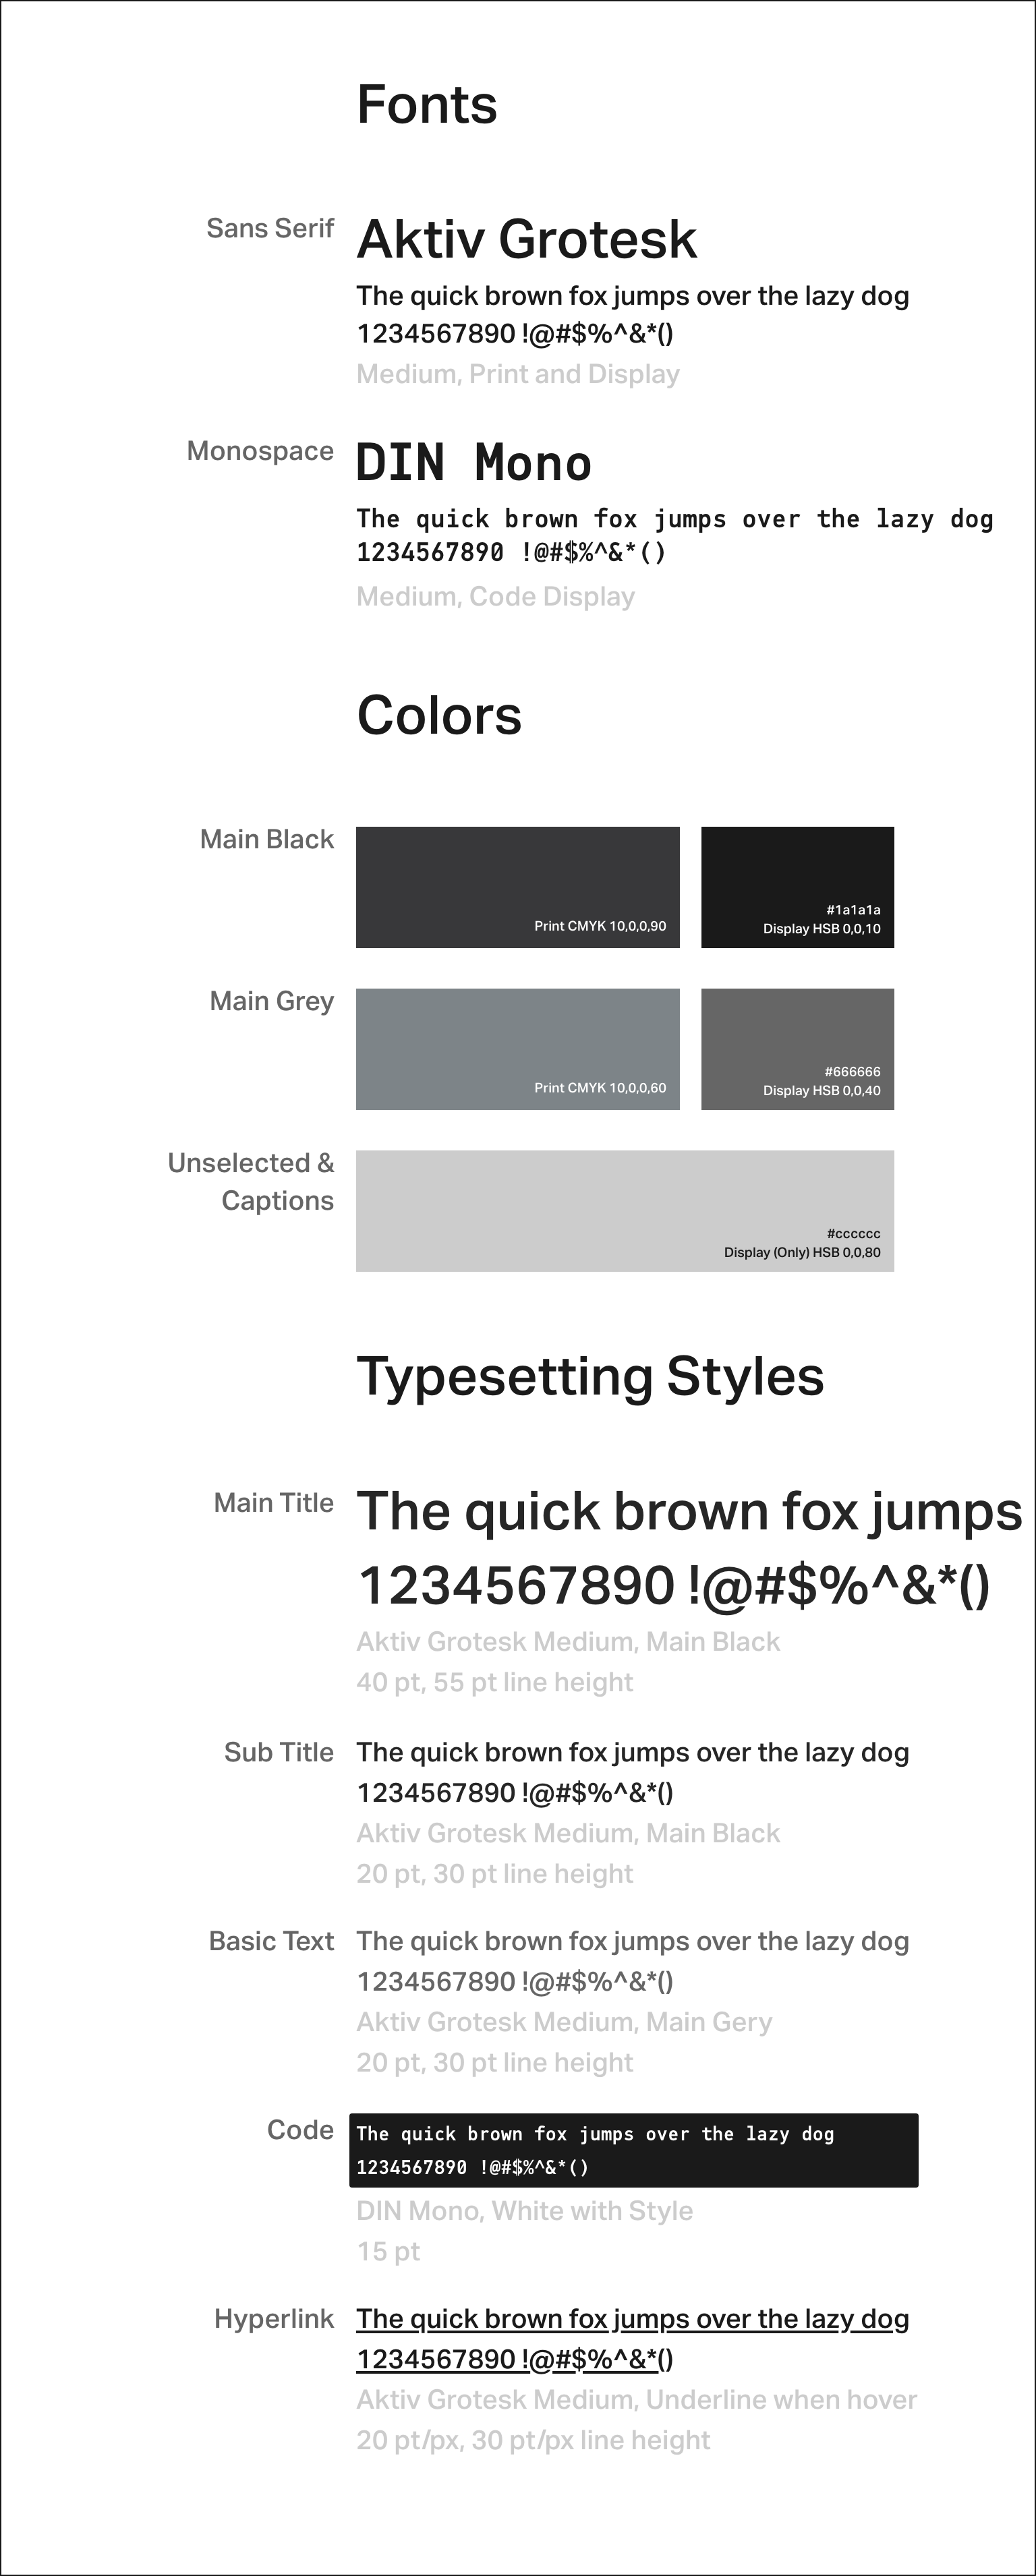 Fonts, colours and typesetting styles